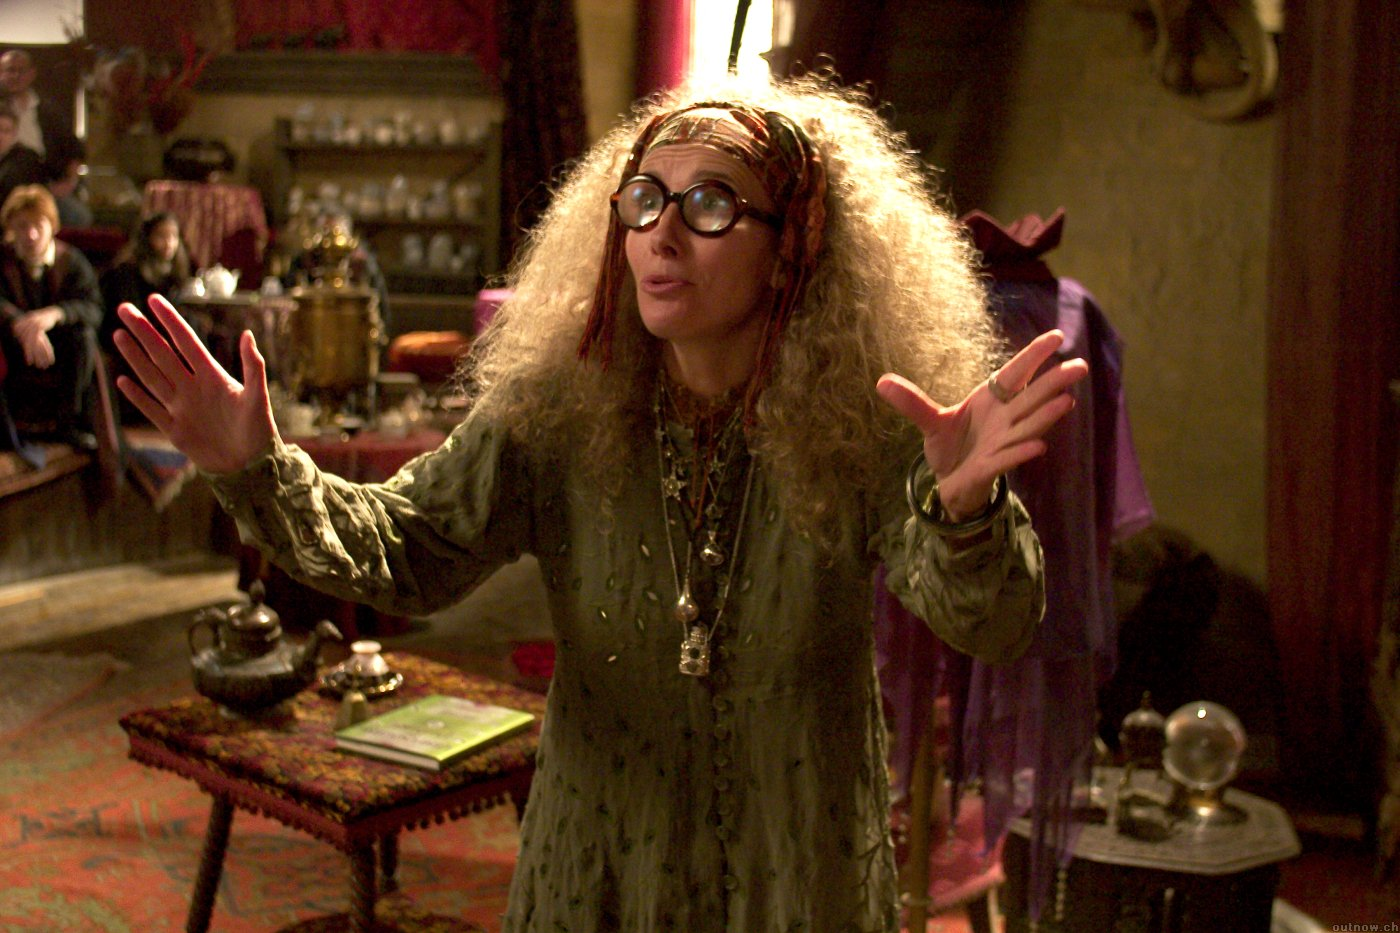 Professor Trelawney, teaching a class.